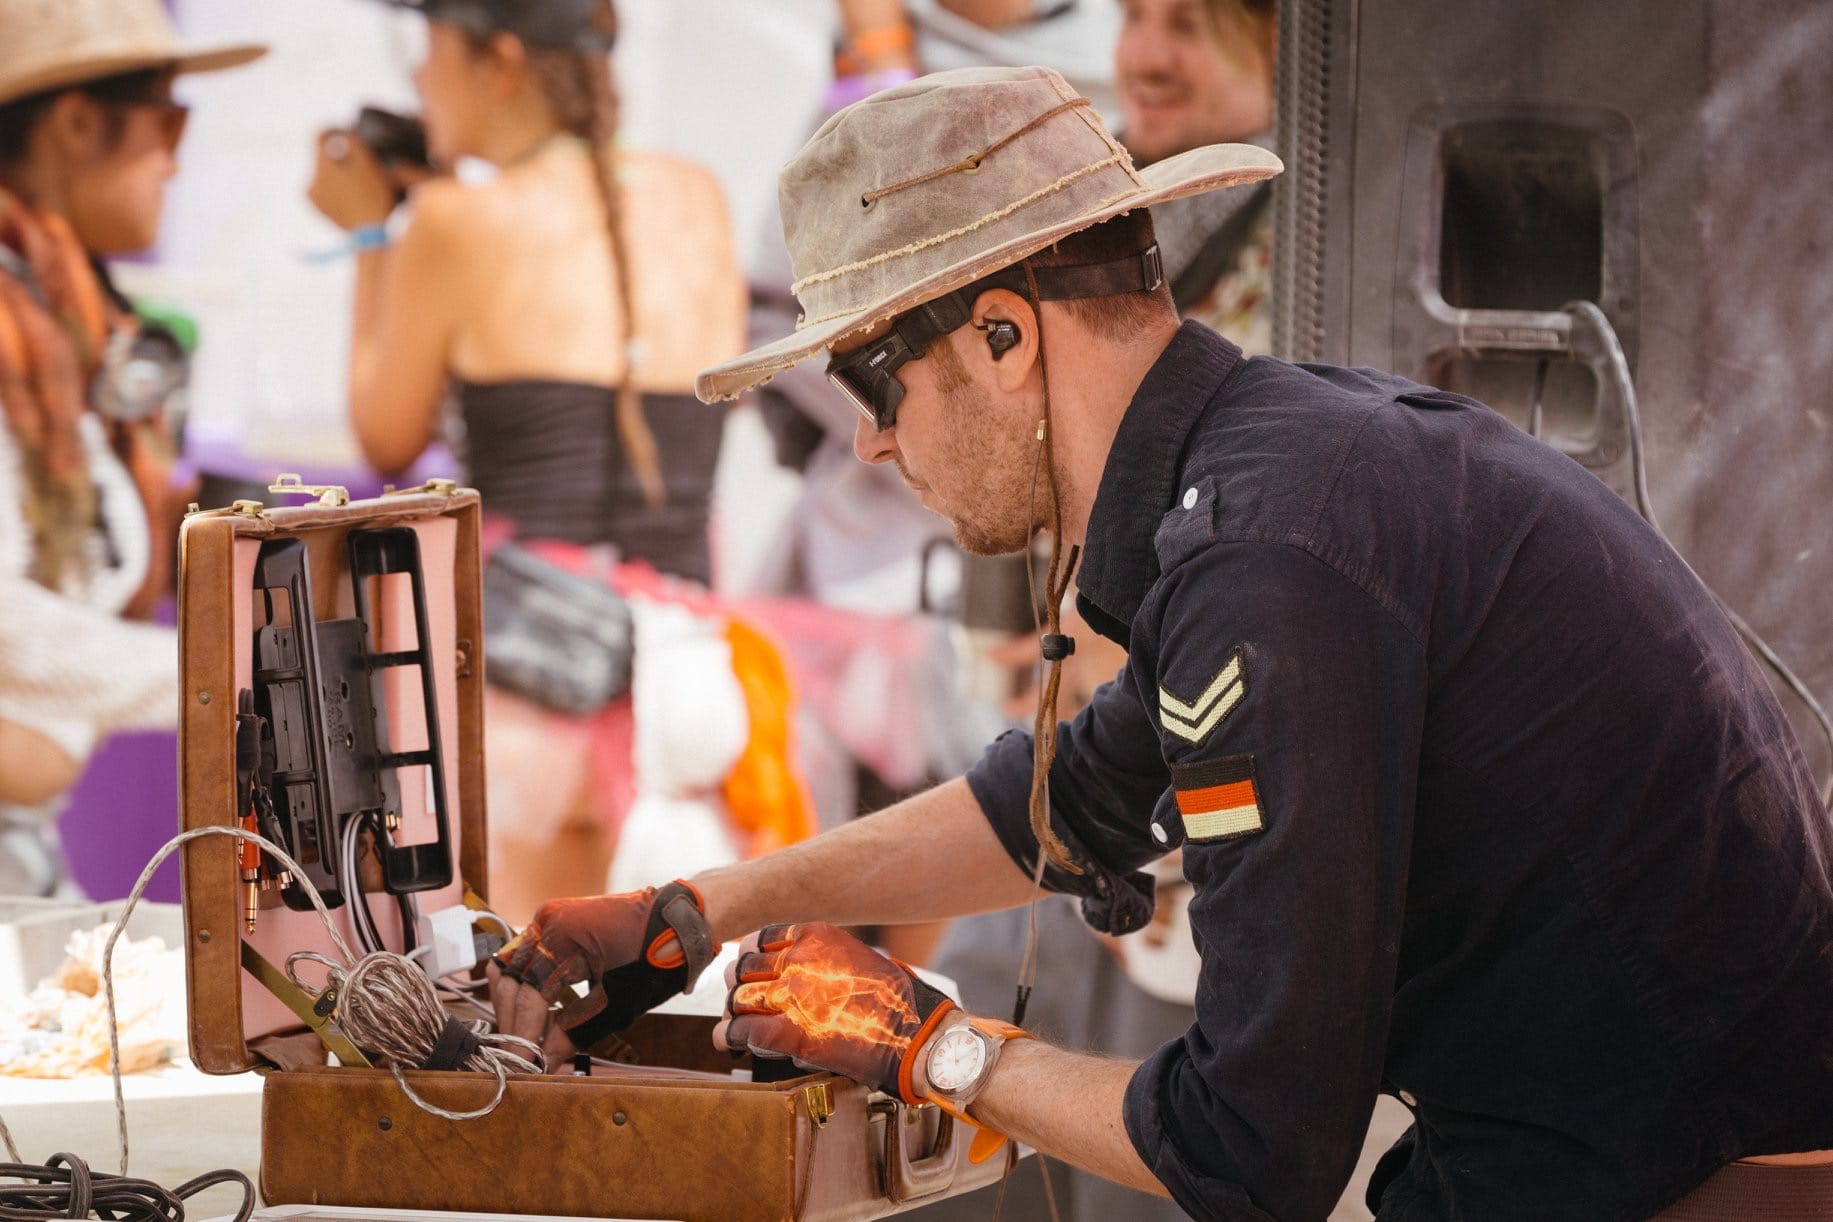 Briefcase Burning Man